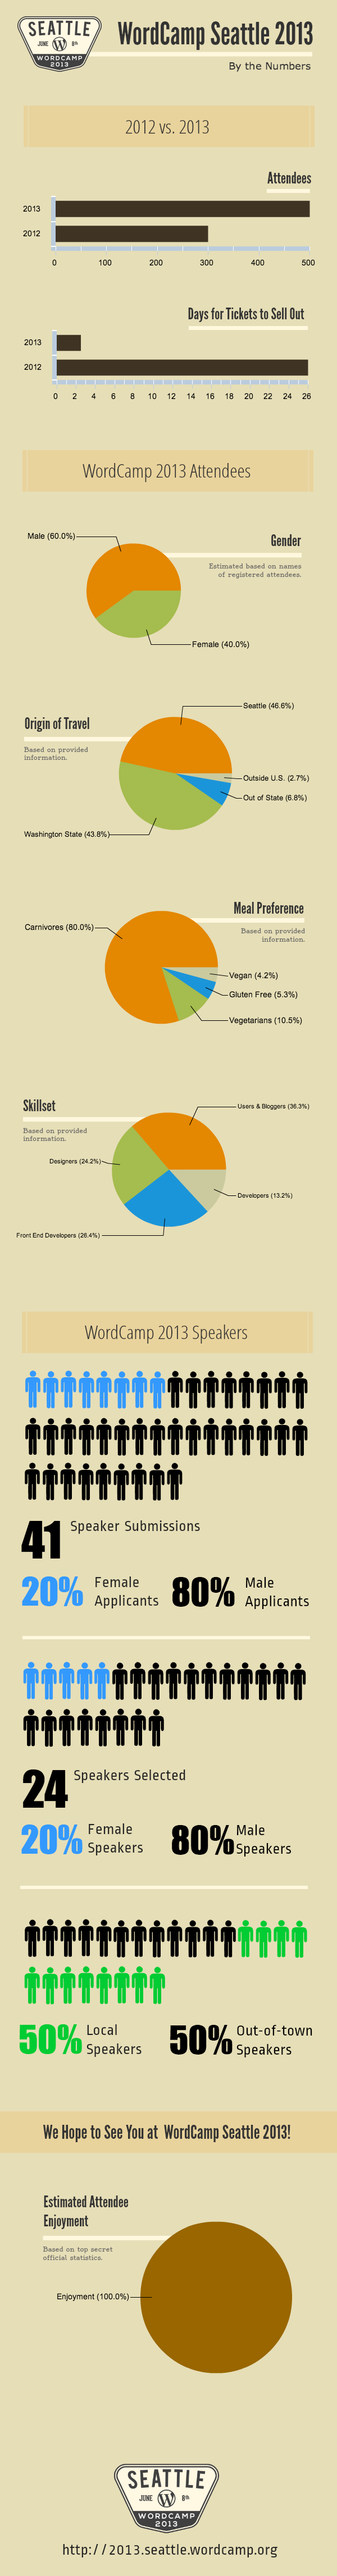 Seattle WordCamp 2013 by the numbers Infographic